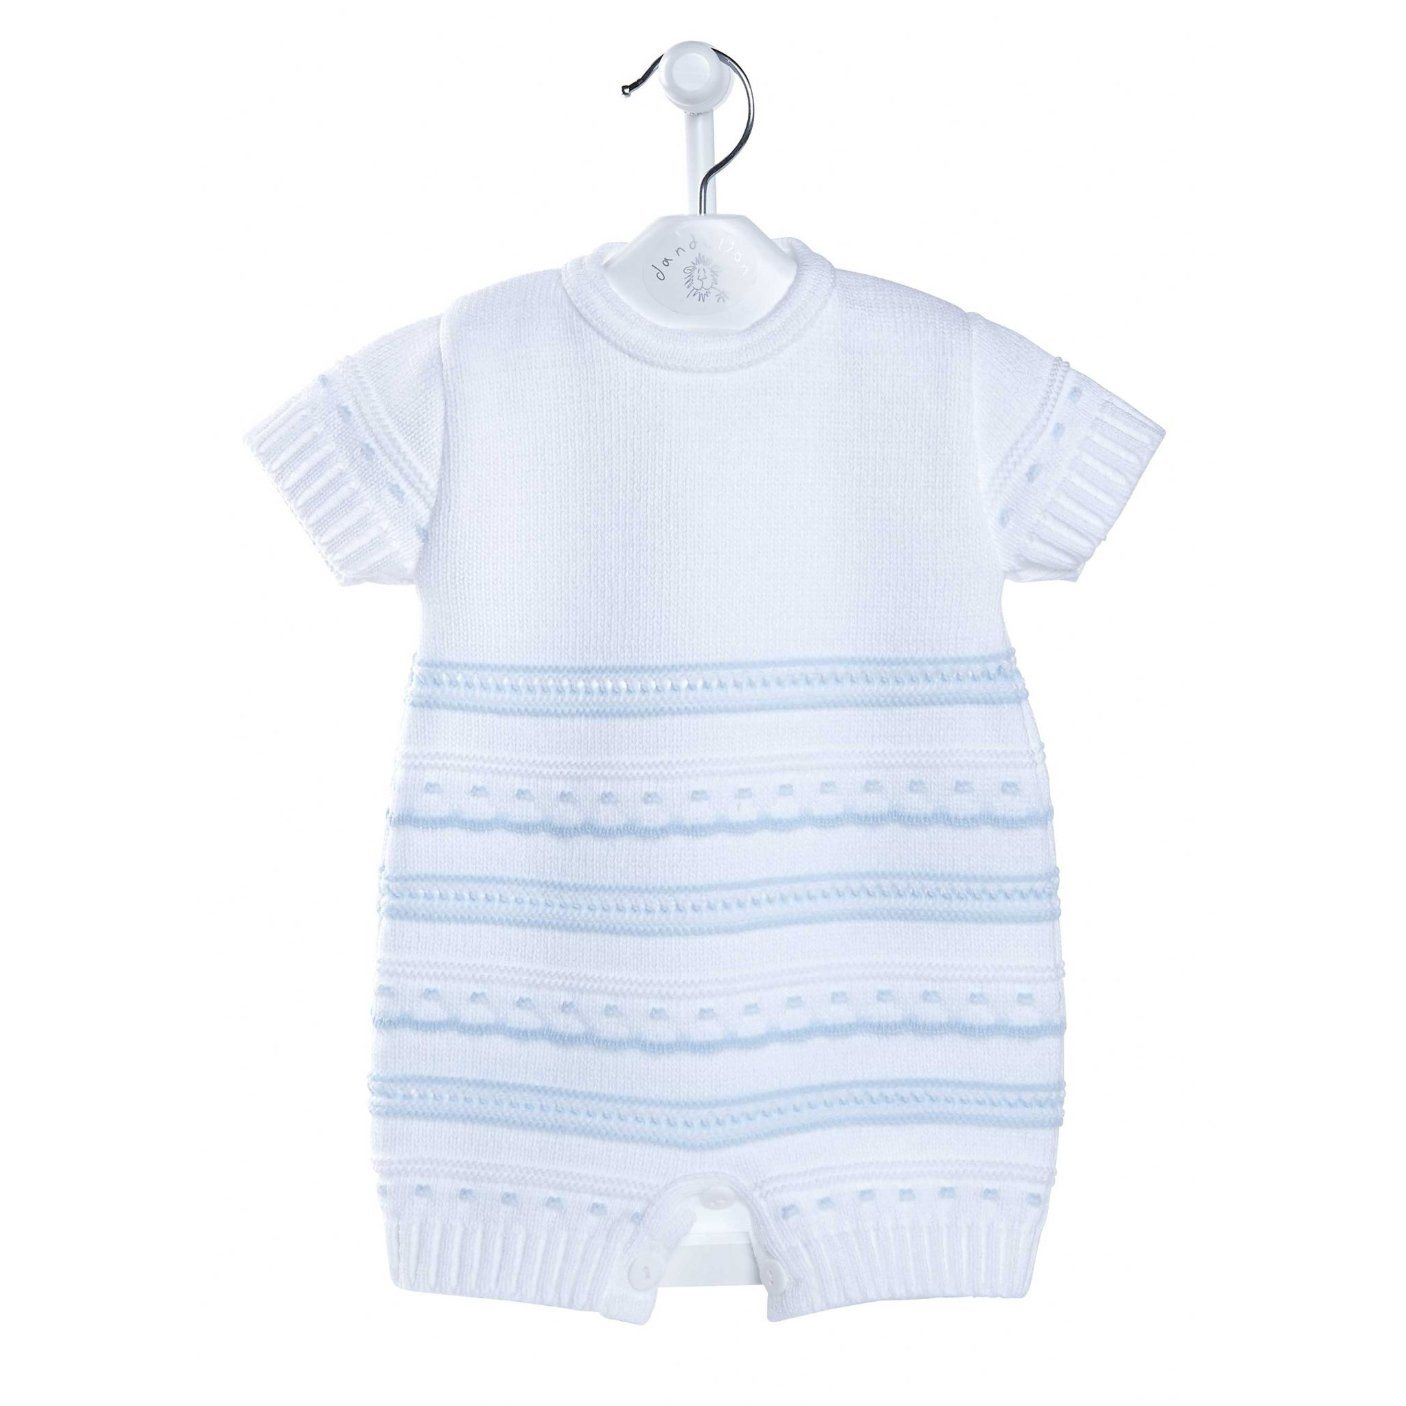 Dandelion White & Blue Knitted Pointelle Romper | Millie and John